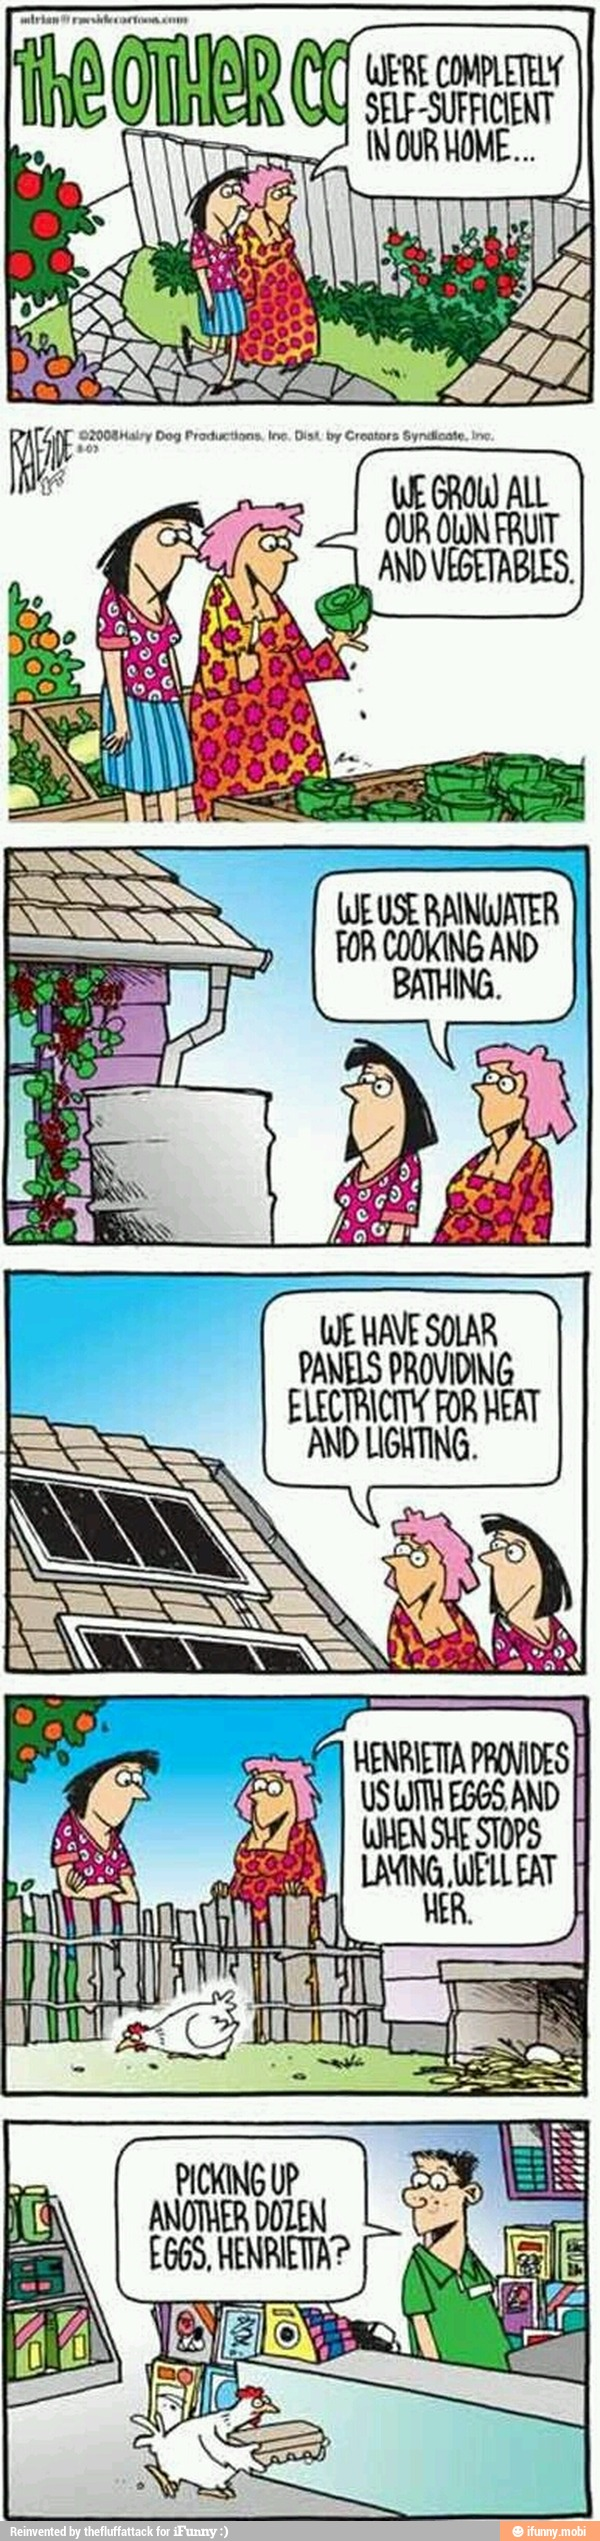 Henrietta's Sustainability (Eco-Funny)